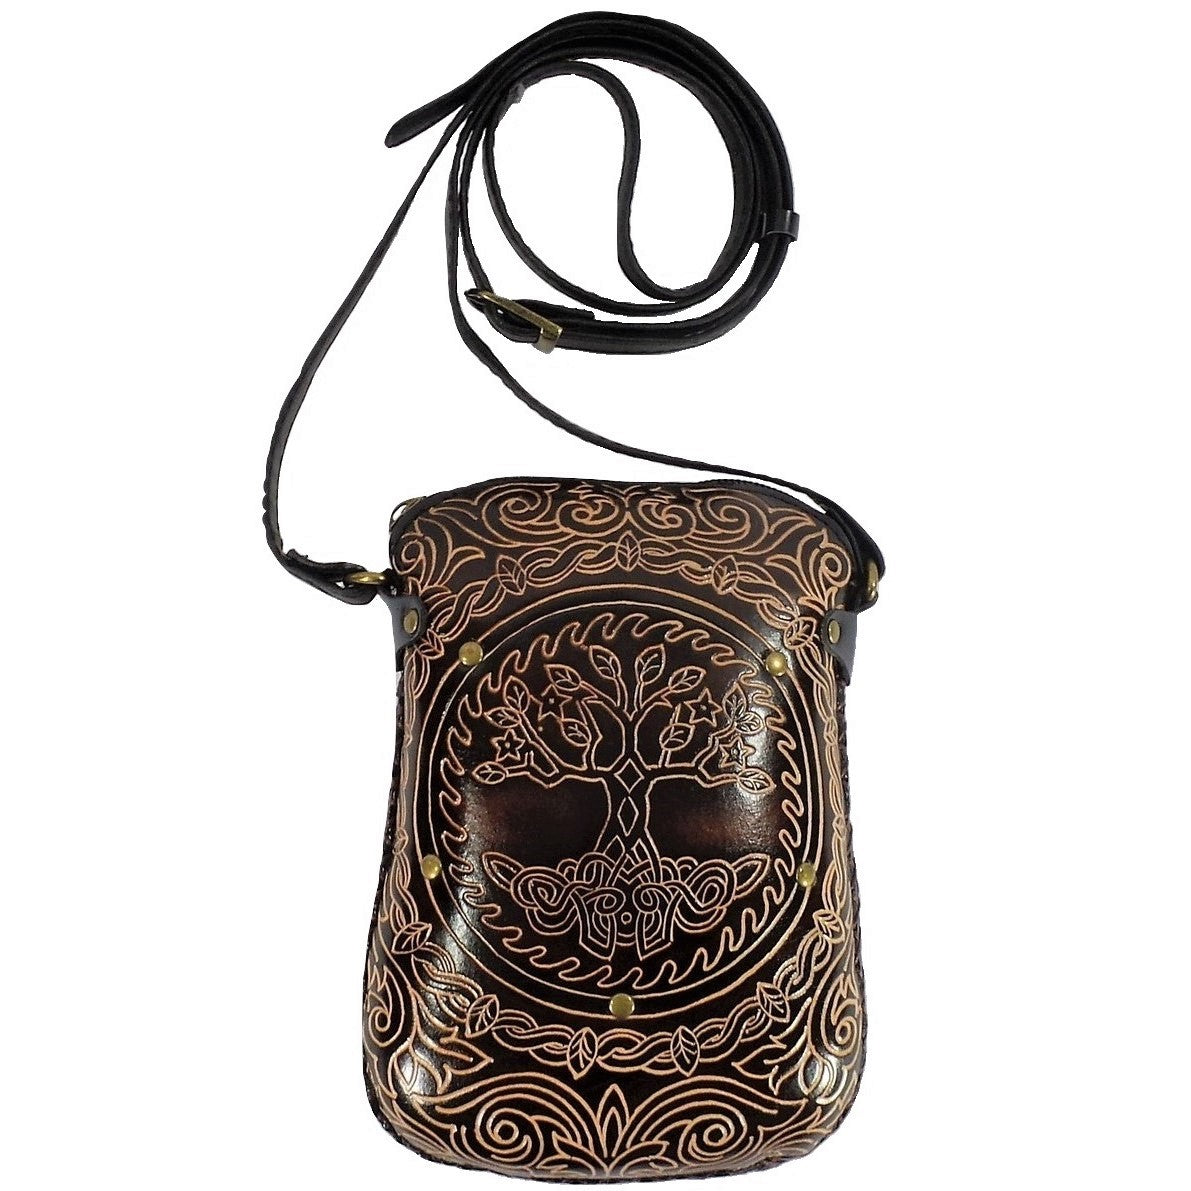 Tree of Life Cross-body Purse (AY33)